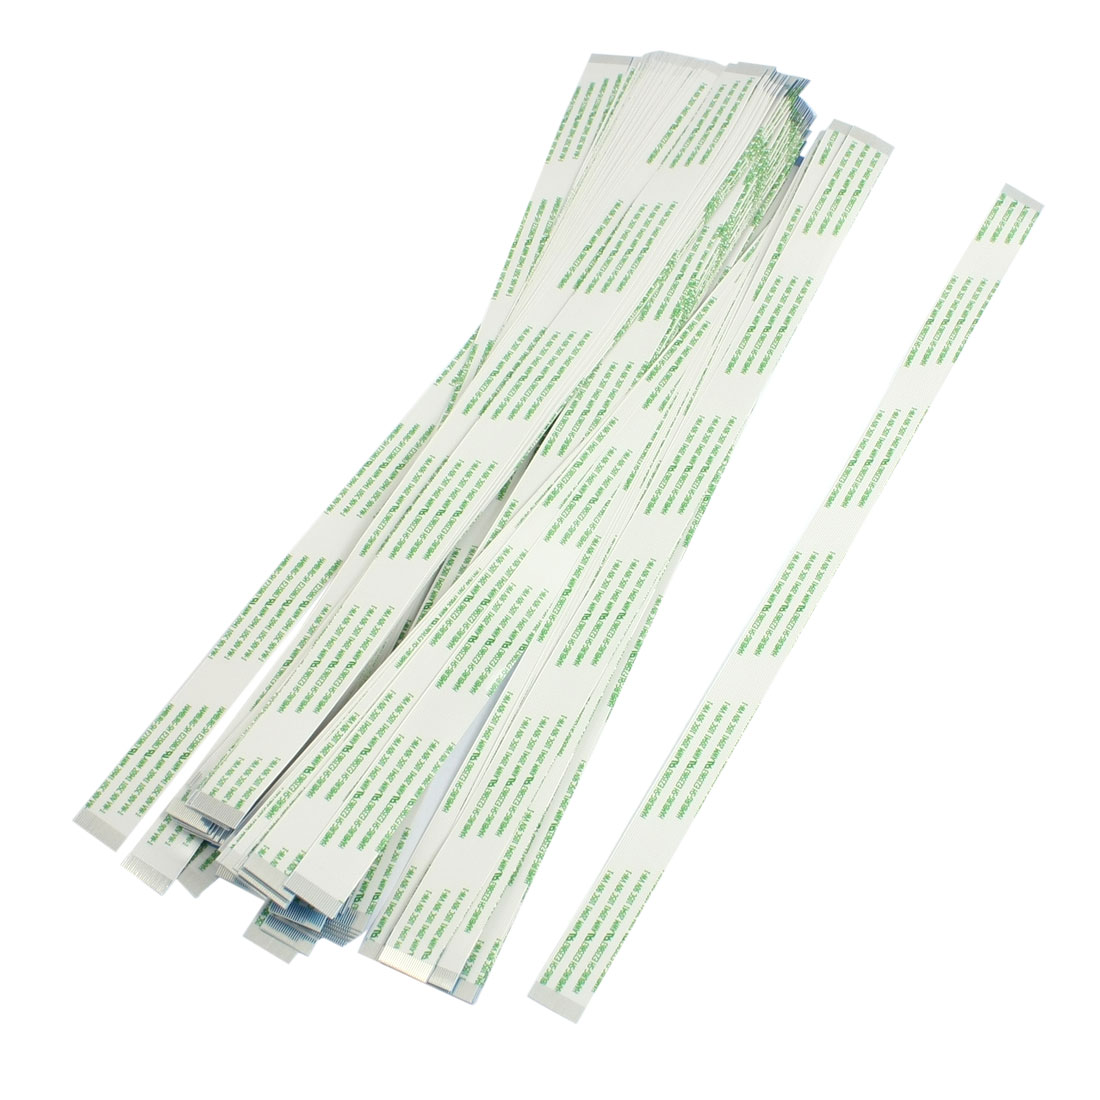 250mm x 12mm Flexible Flat 24 Pins FFC Cable White Green 100 Pcs